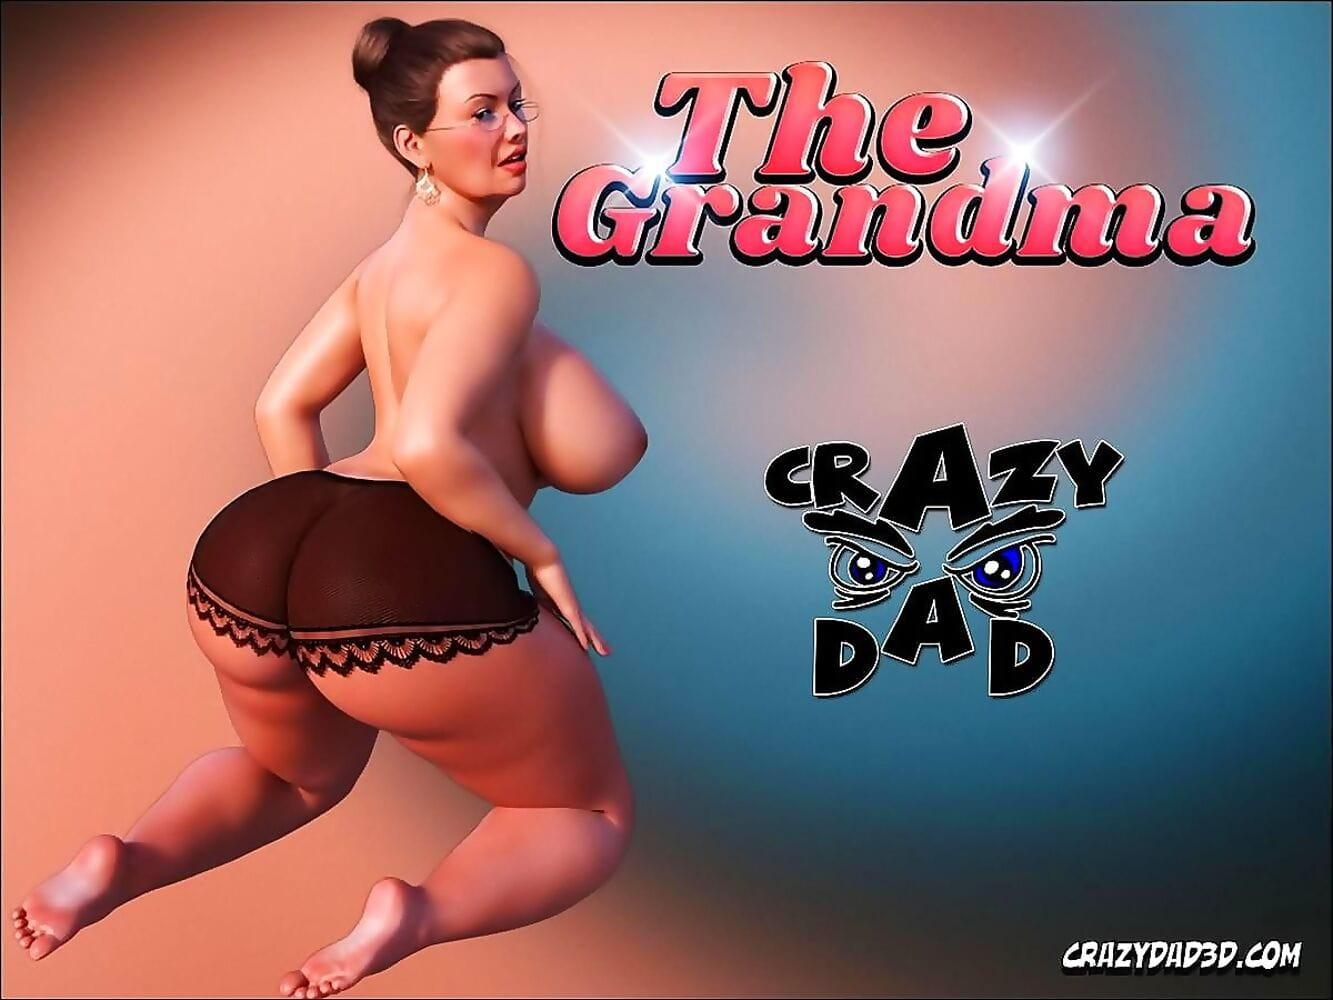 CrazyDad- The Grandma